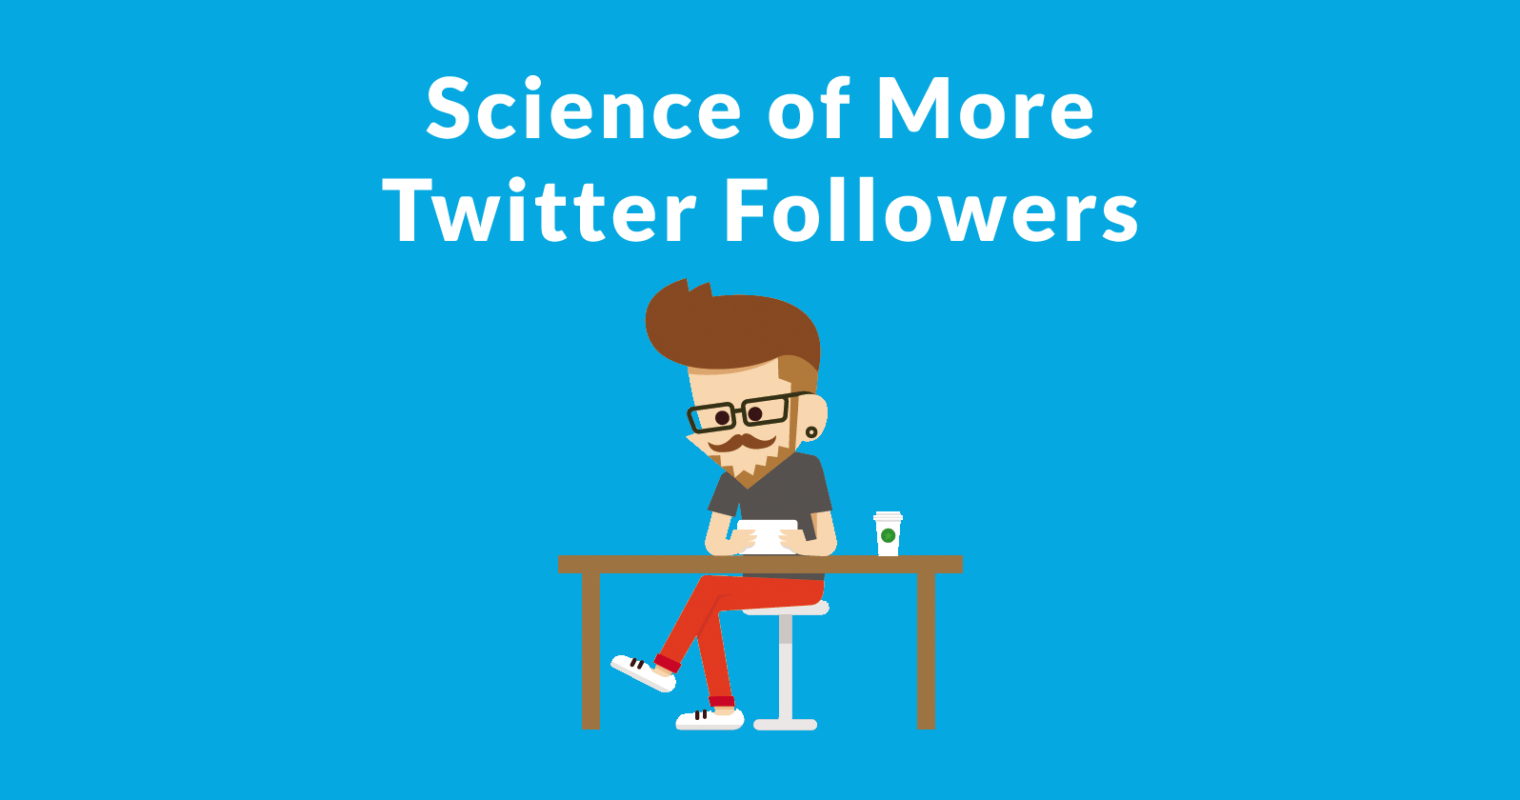 How to Get More Twitter Followers, According to Science